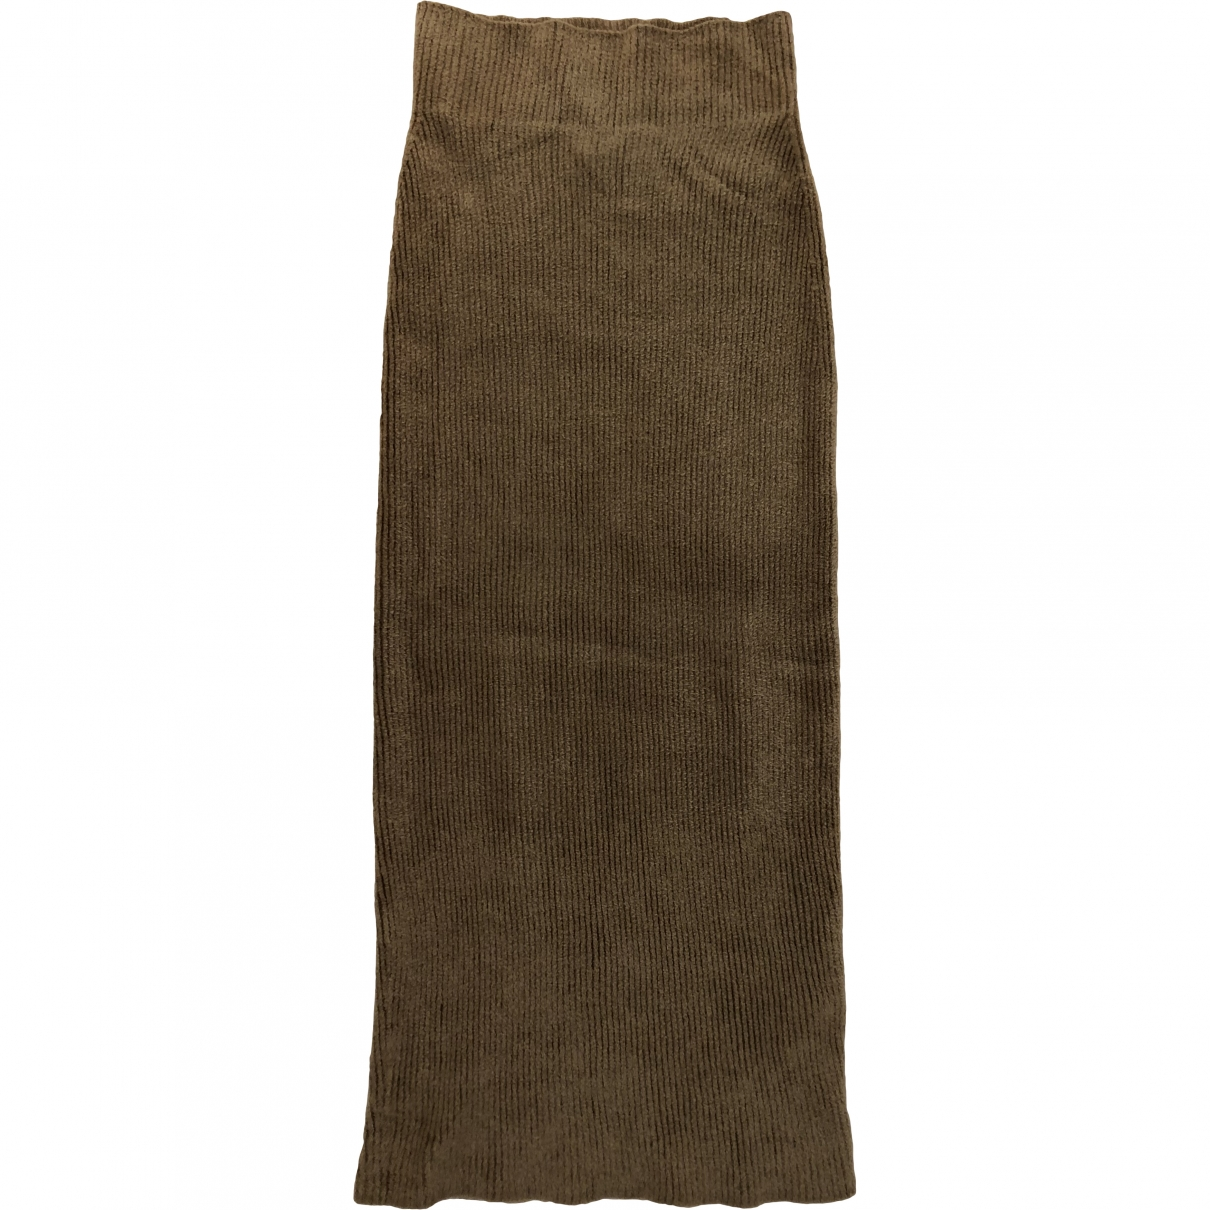 Helmut Lang \N Brown skirt for Women XS International